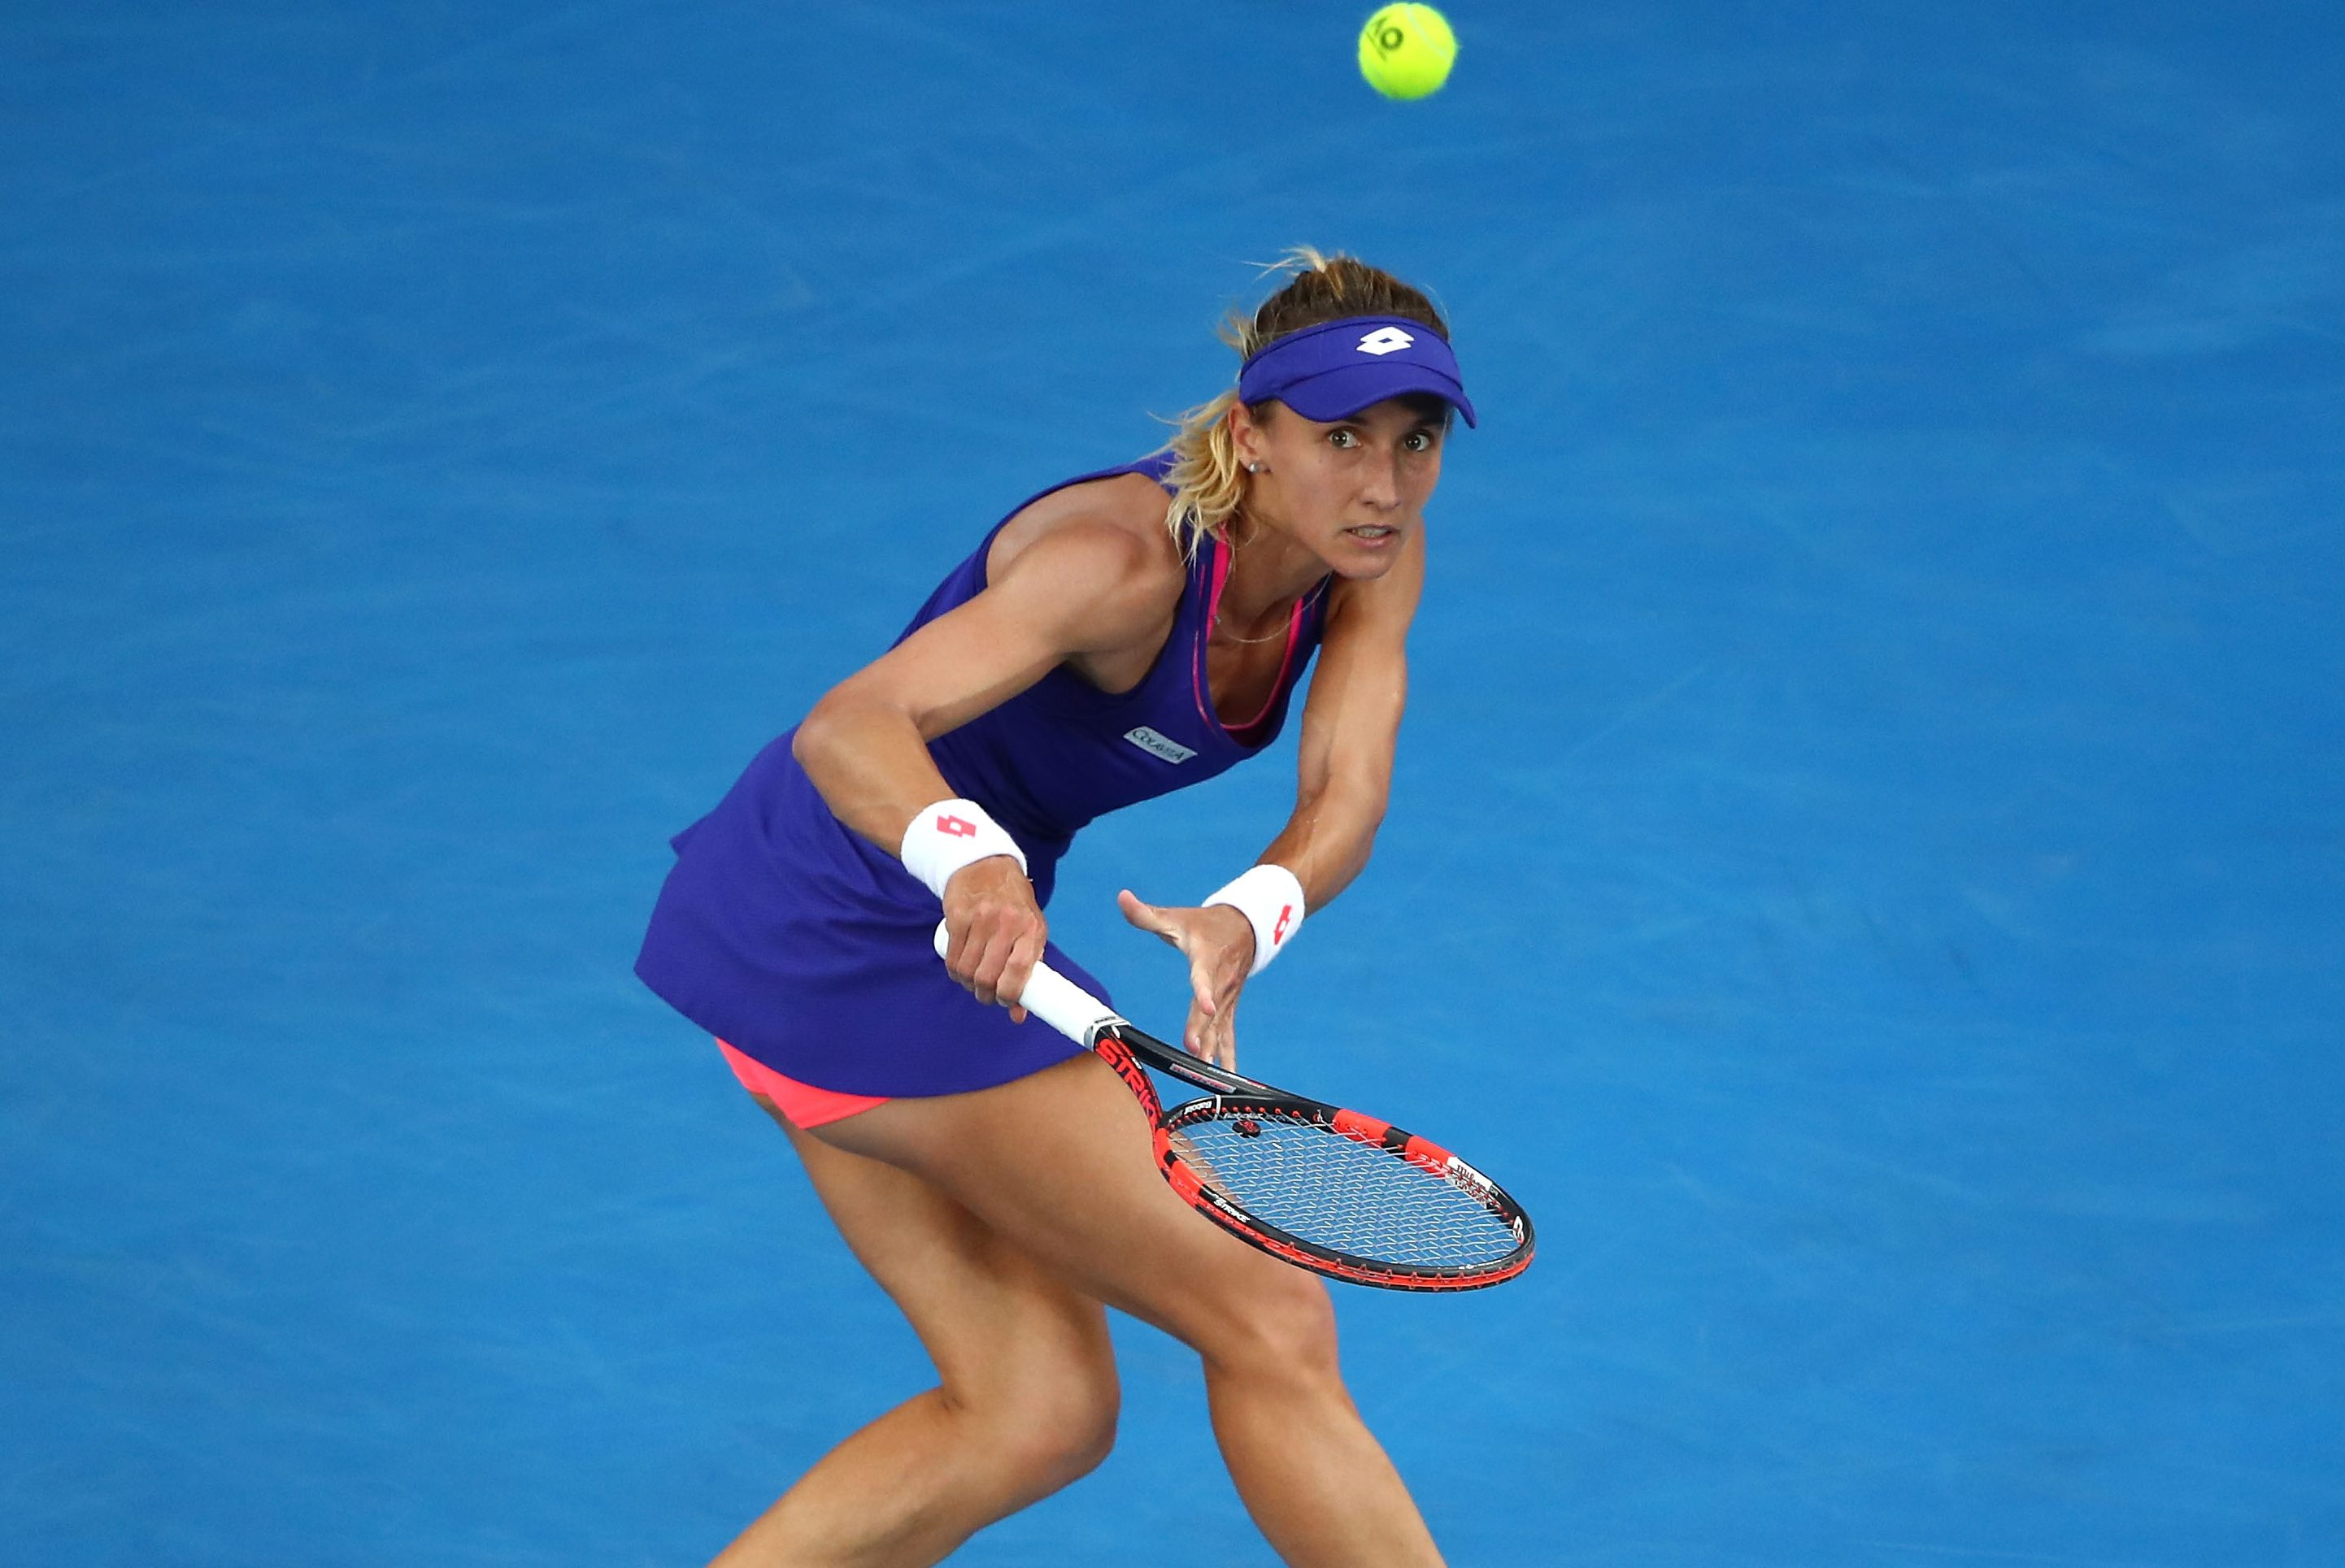 MELBOURNE, AUSTRALIA - JANUARY 16:  Lesia Tsurenko of the Ukraine plays a shot in her first round match against Angelique Kerber of Germany on day one of the 2017 Australian Open at Melbourne Park on January 16, 2017 in Melbourne, Australia.  (Photo by Clive Brunskill/Getty Images)